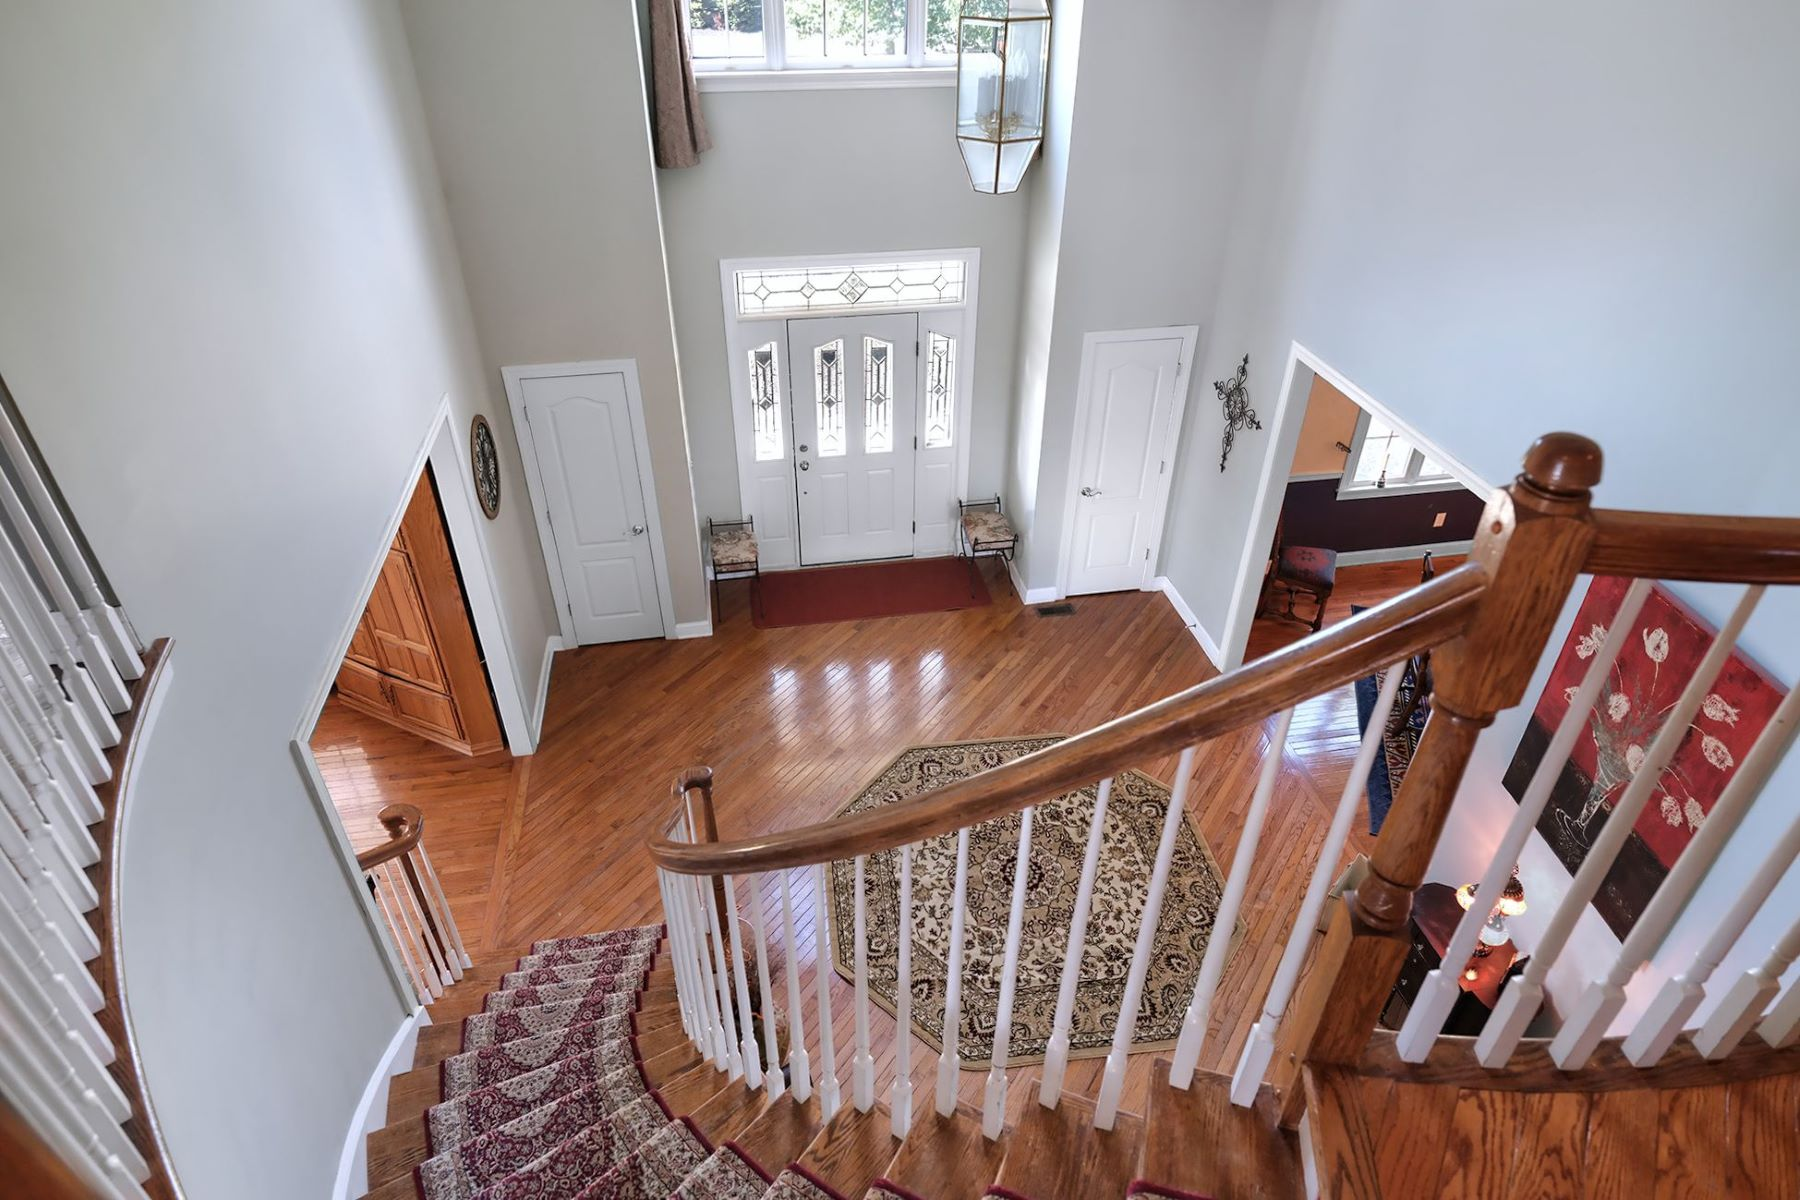 Additional photo for property listing at Hunterdon Pointe 25 Patrick Henry Place, Flemington, New Jersey 08822 United States